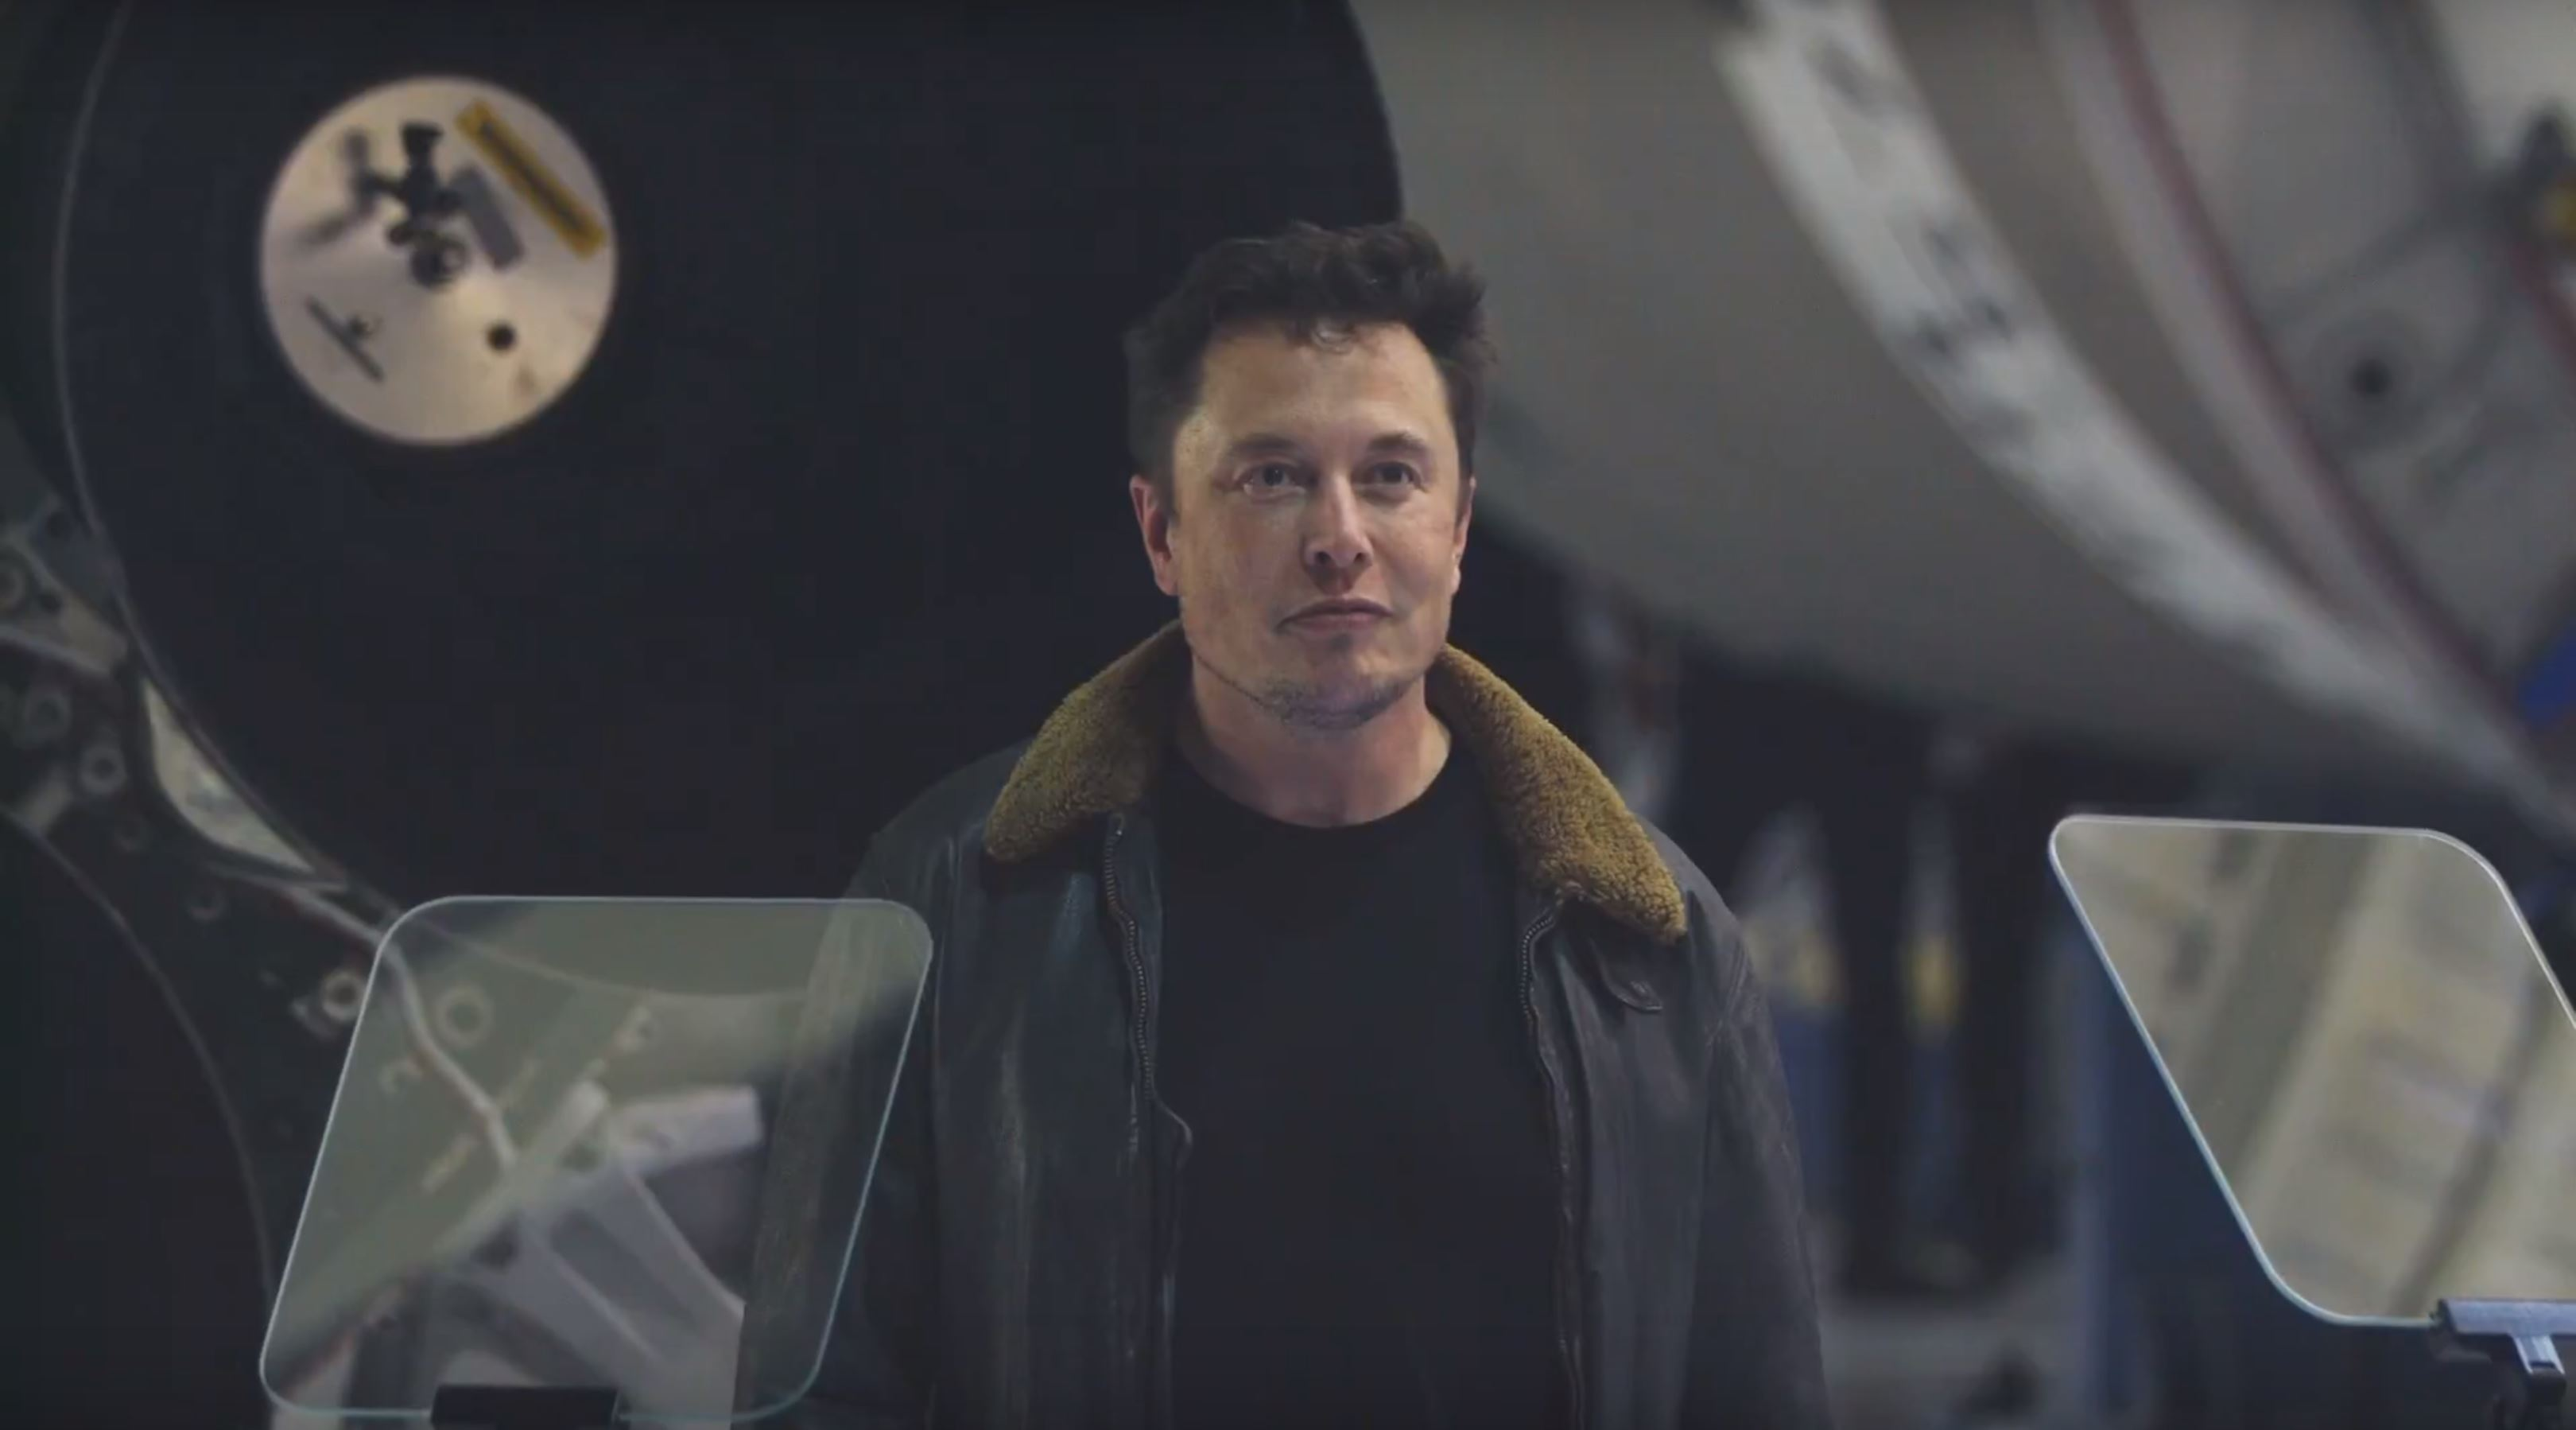 BFR 2018 event Elon Musk (SpaceX) 1